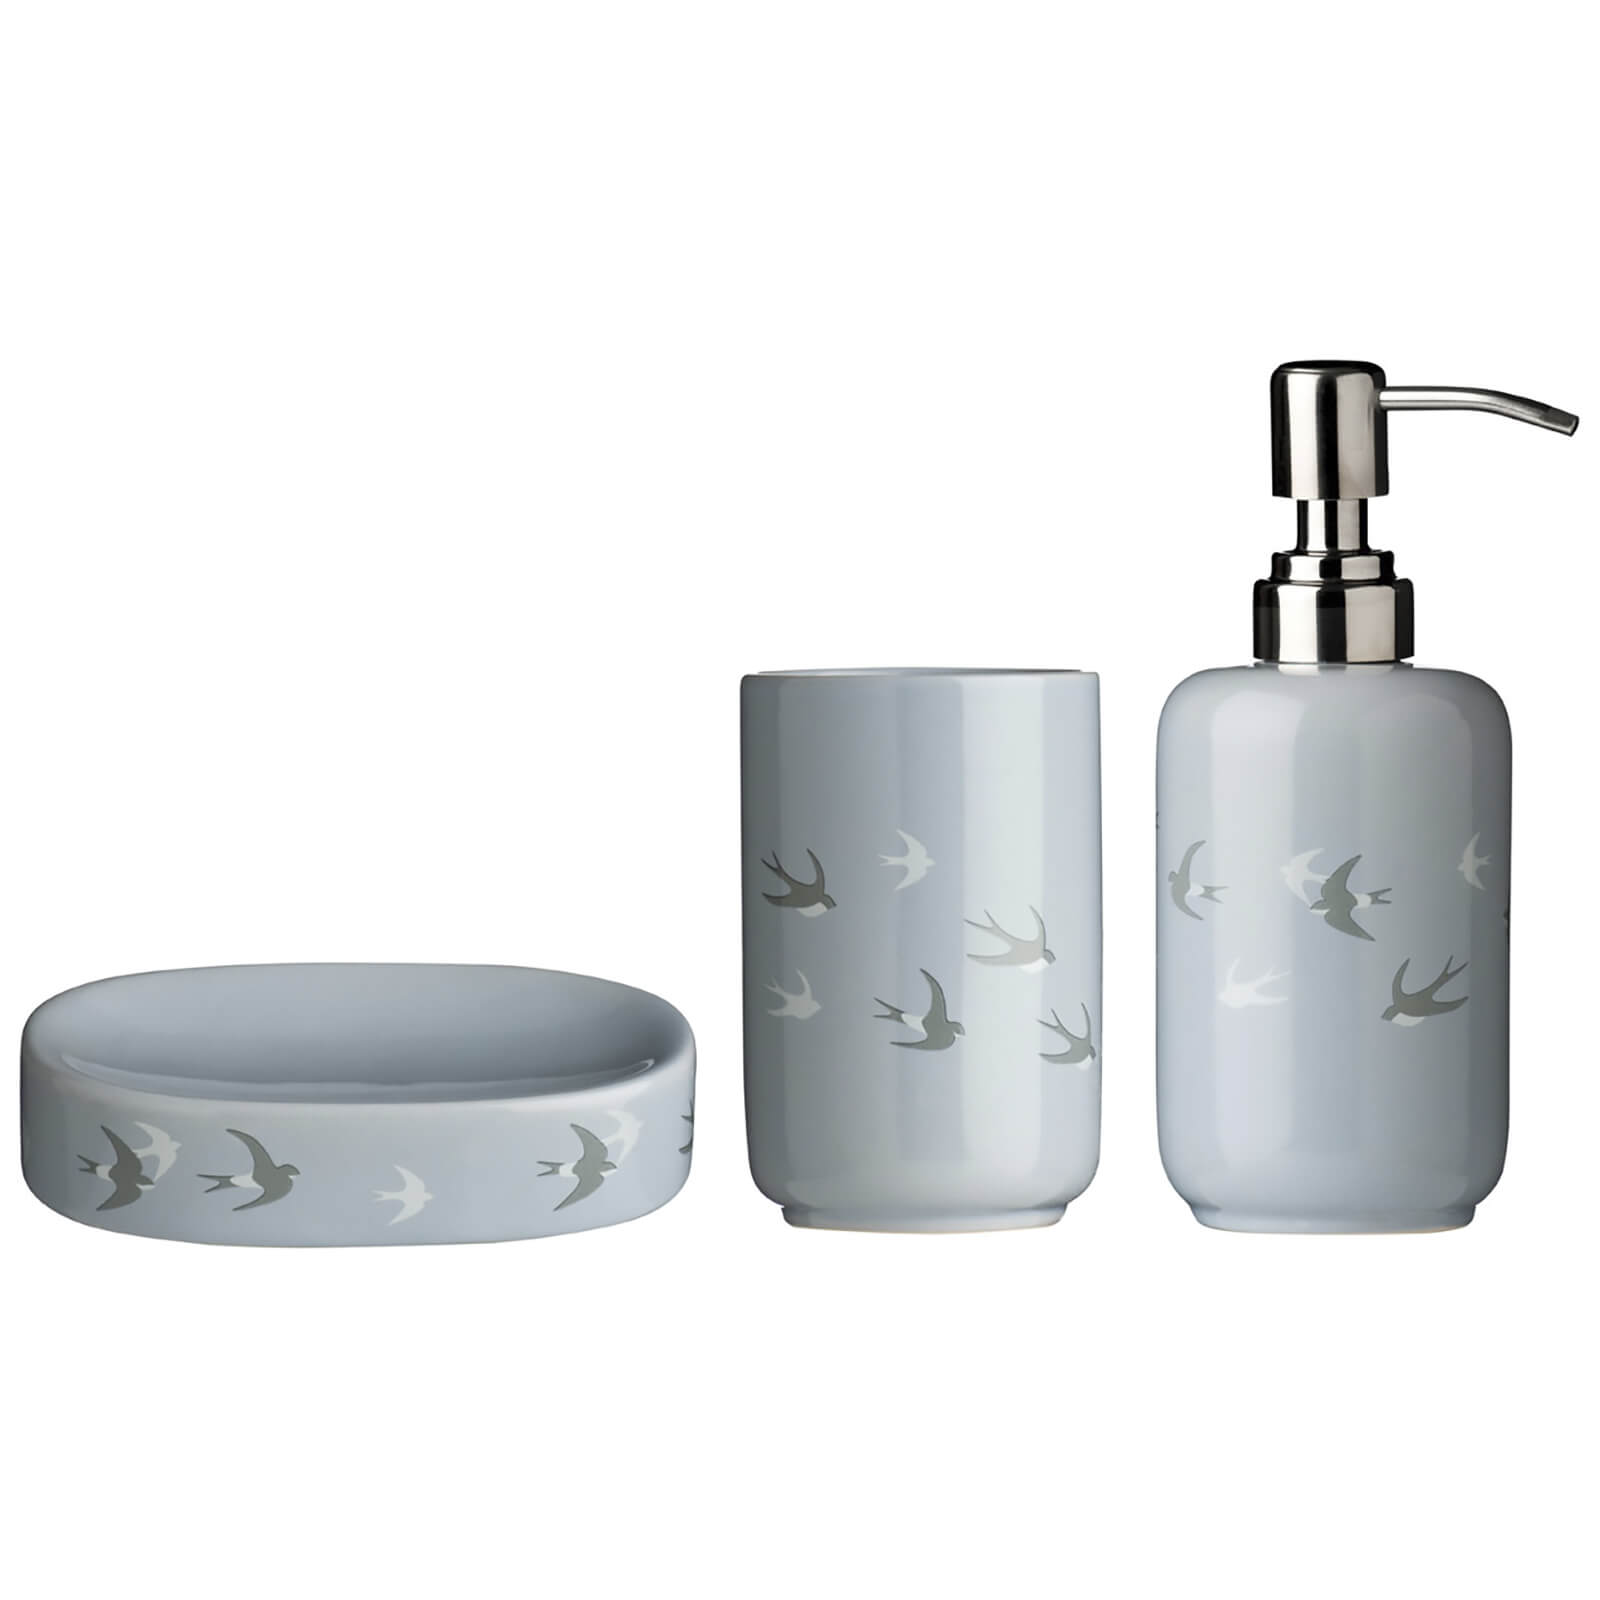 Fifty Five South Swift Bathroom Set - Dolomite Blue (Set of 3)